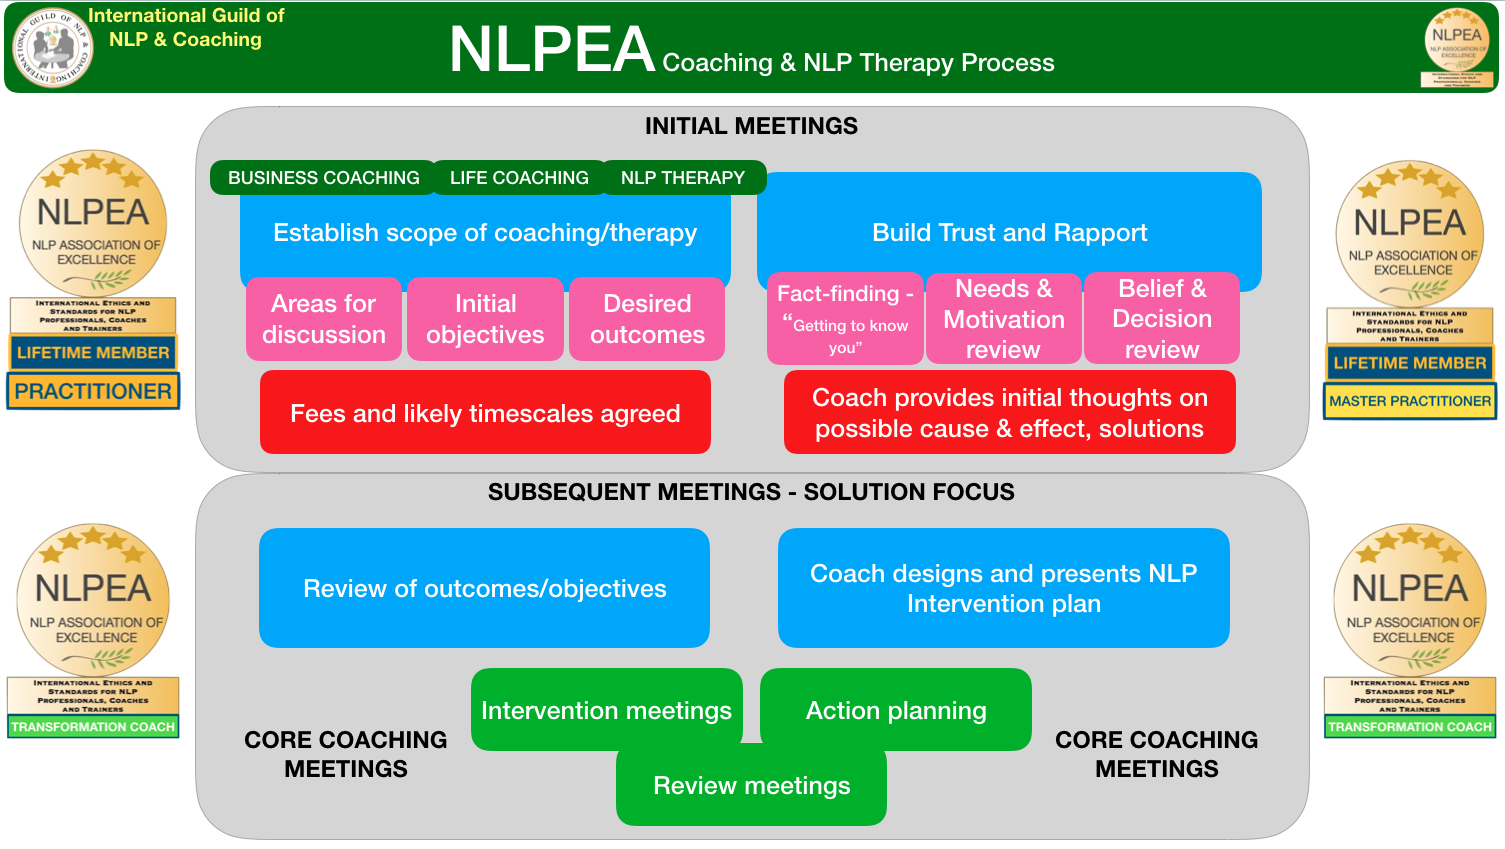 Coaching and NLP Process - NLPEA - NLP Association of ...